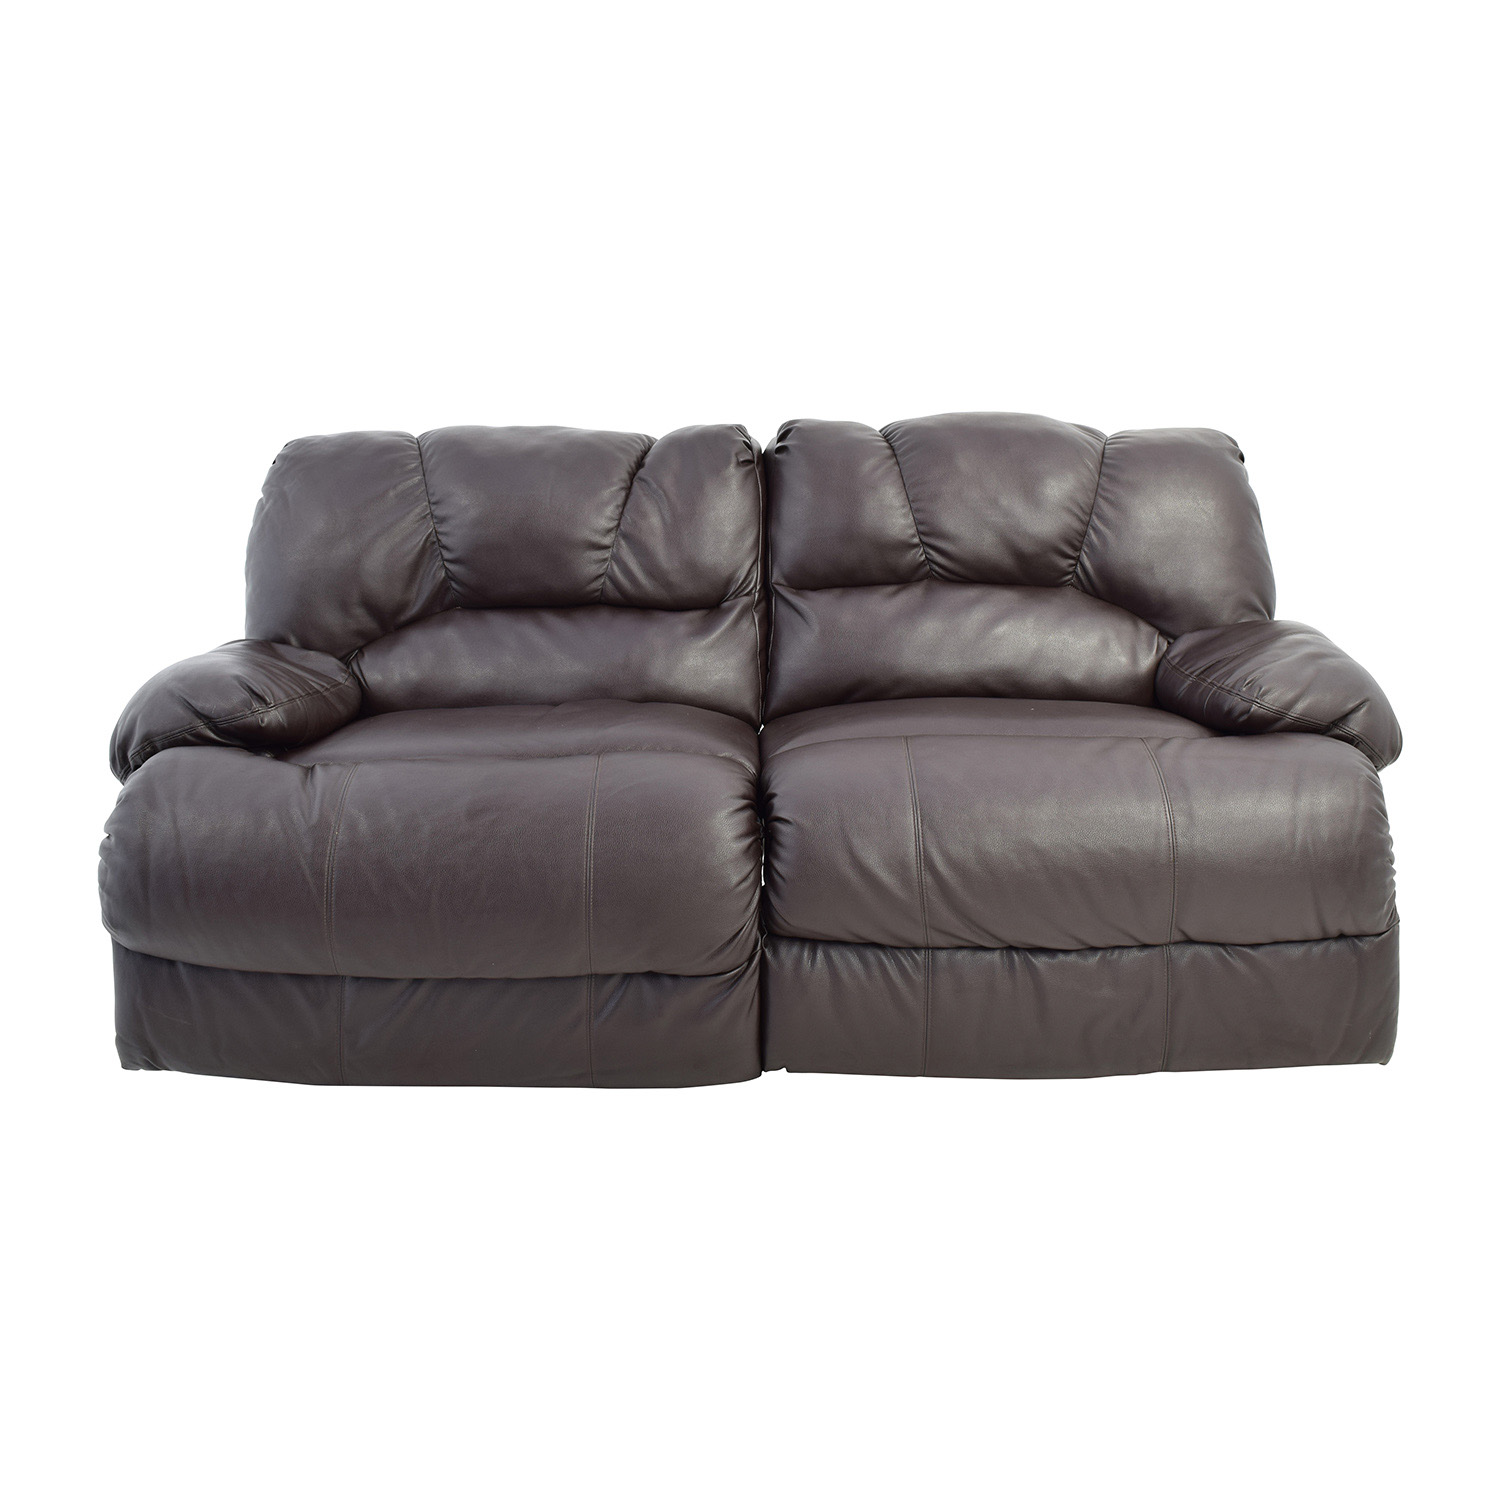 couch couches design furniture at size full sofas mart of sofa martsofa nebraska beds